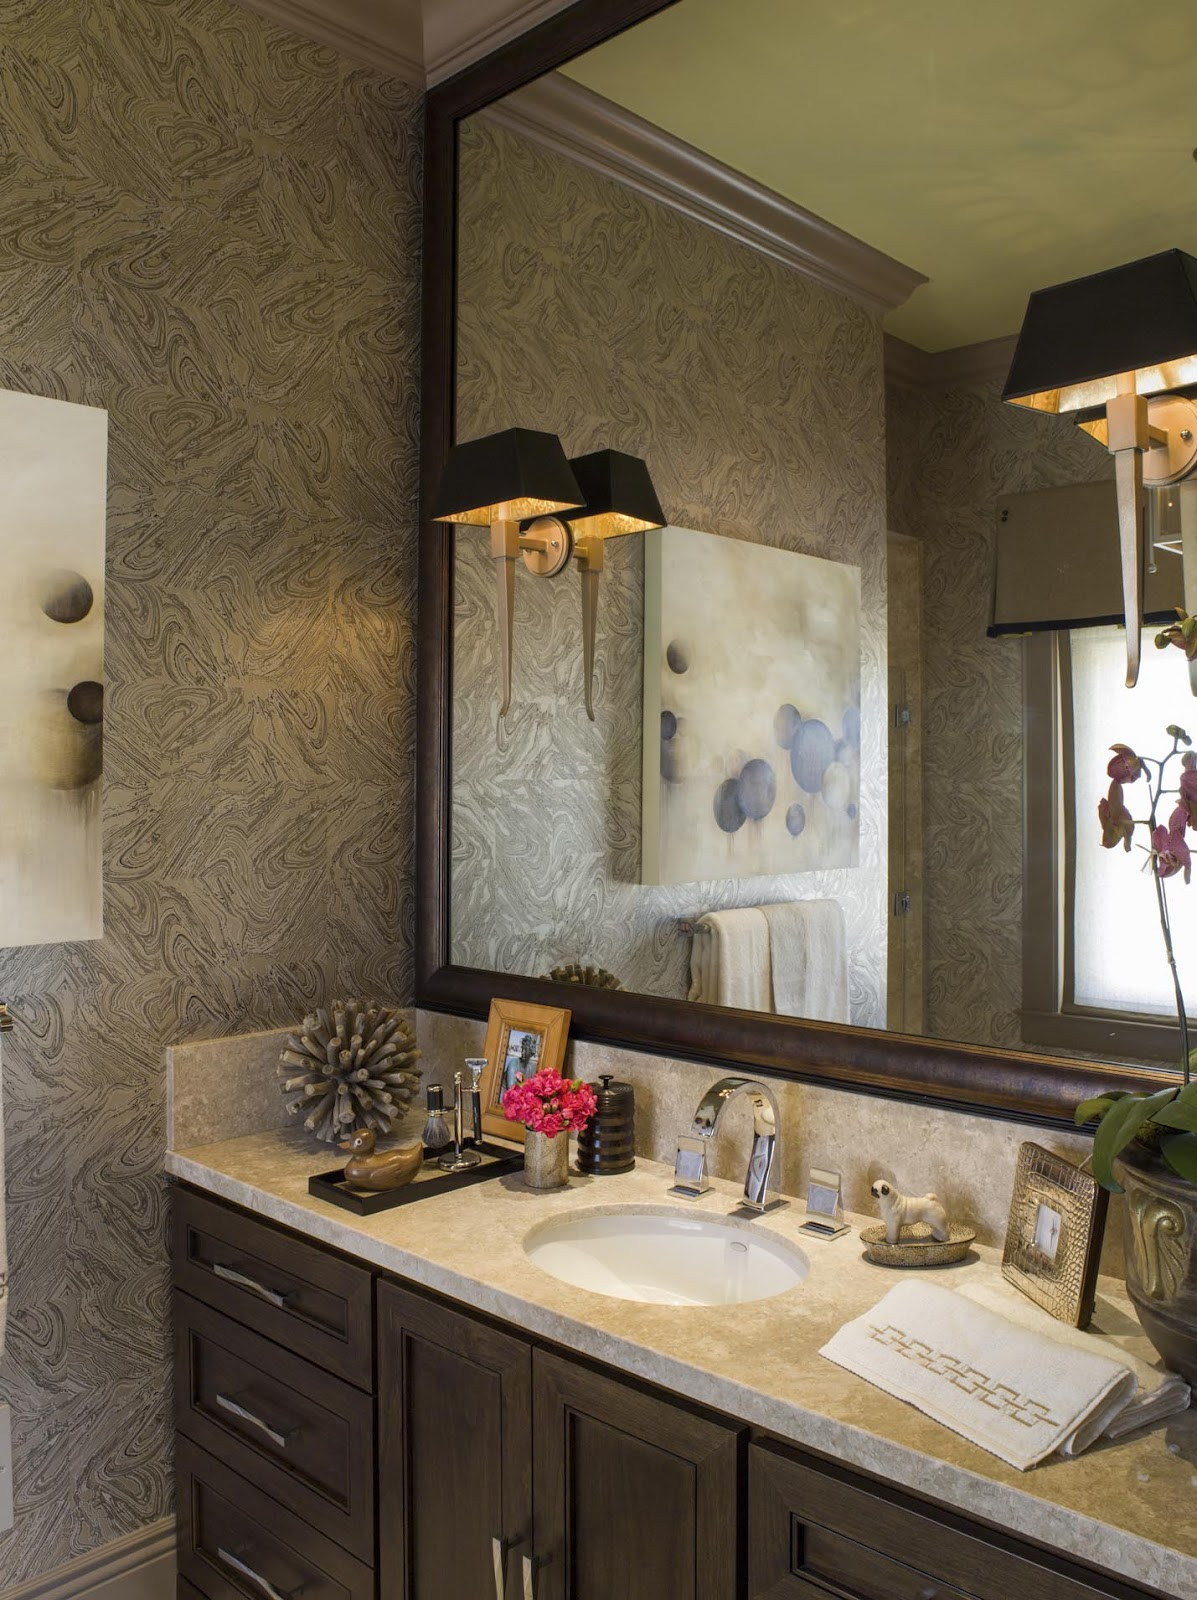 Bathroom wallpaper ideas bathroom wallpaper designs for Bathroom design and decor